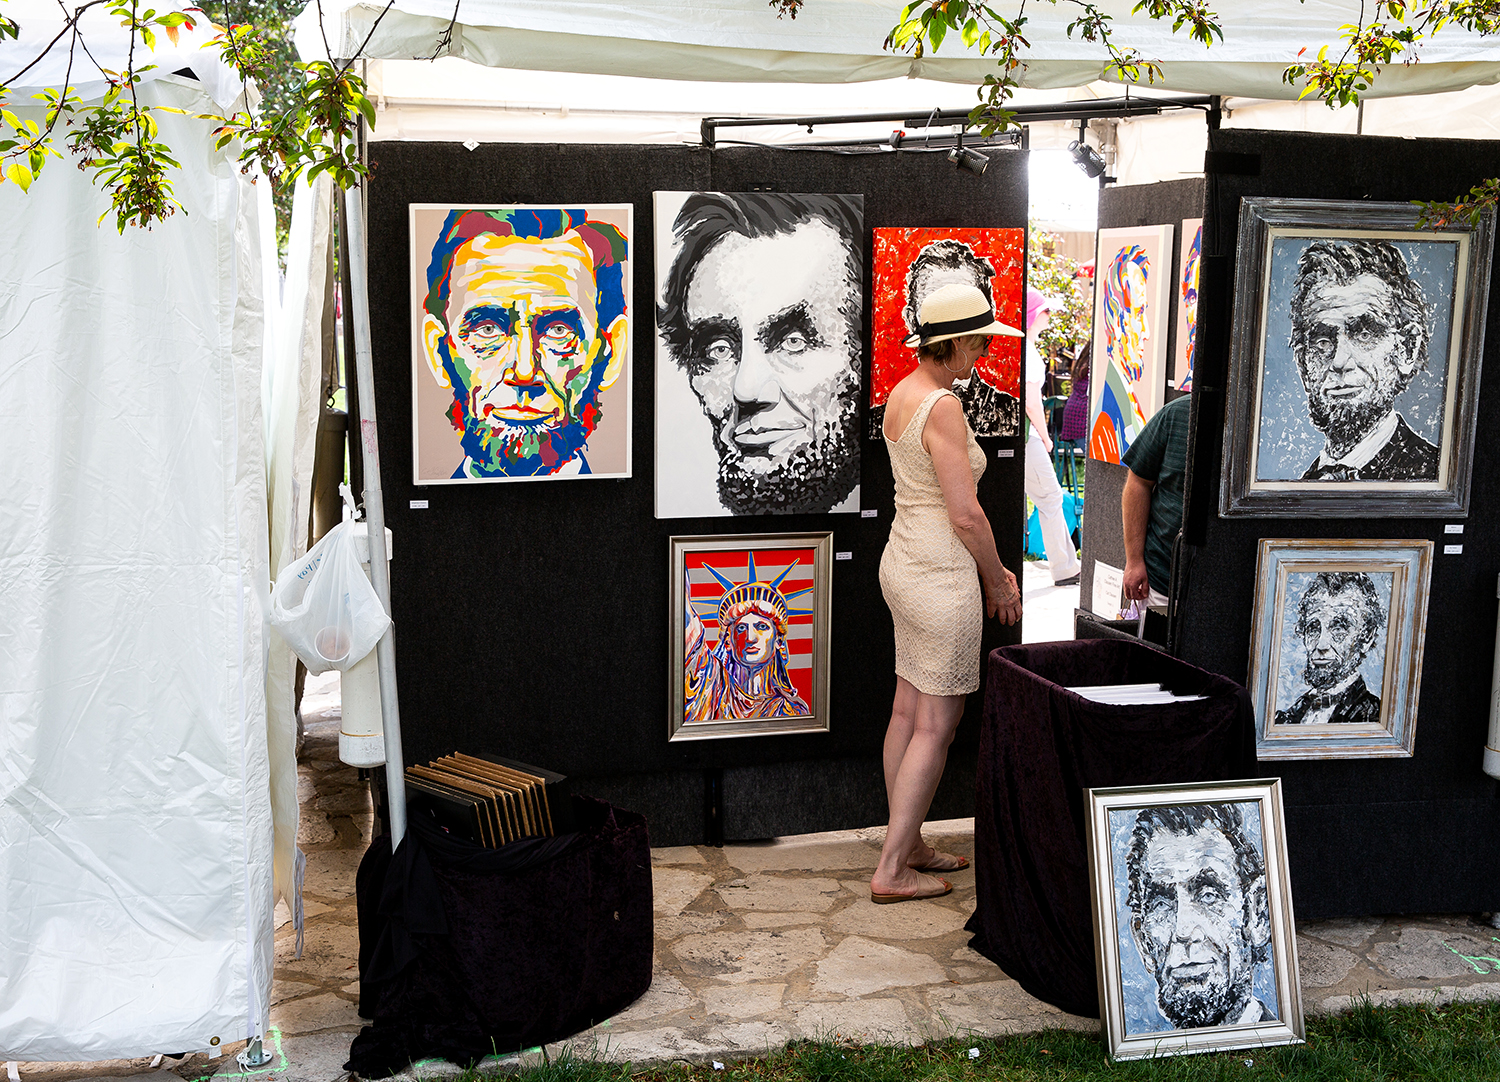 Cat Clausen brought her colorist interpretations of Abraham Lincoln and other portraits to the Old Capitol Art Festival Saturday, May 19, 2018 at the Old State Capitol in Springfield, Ill. Clausen is from Dwight.  [Rich Saal/The State Journal-Register]